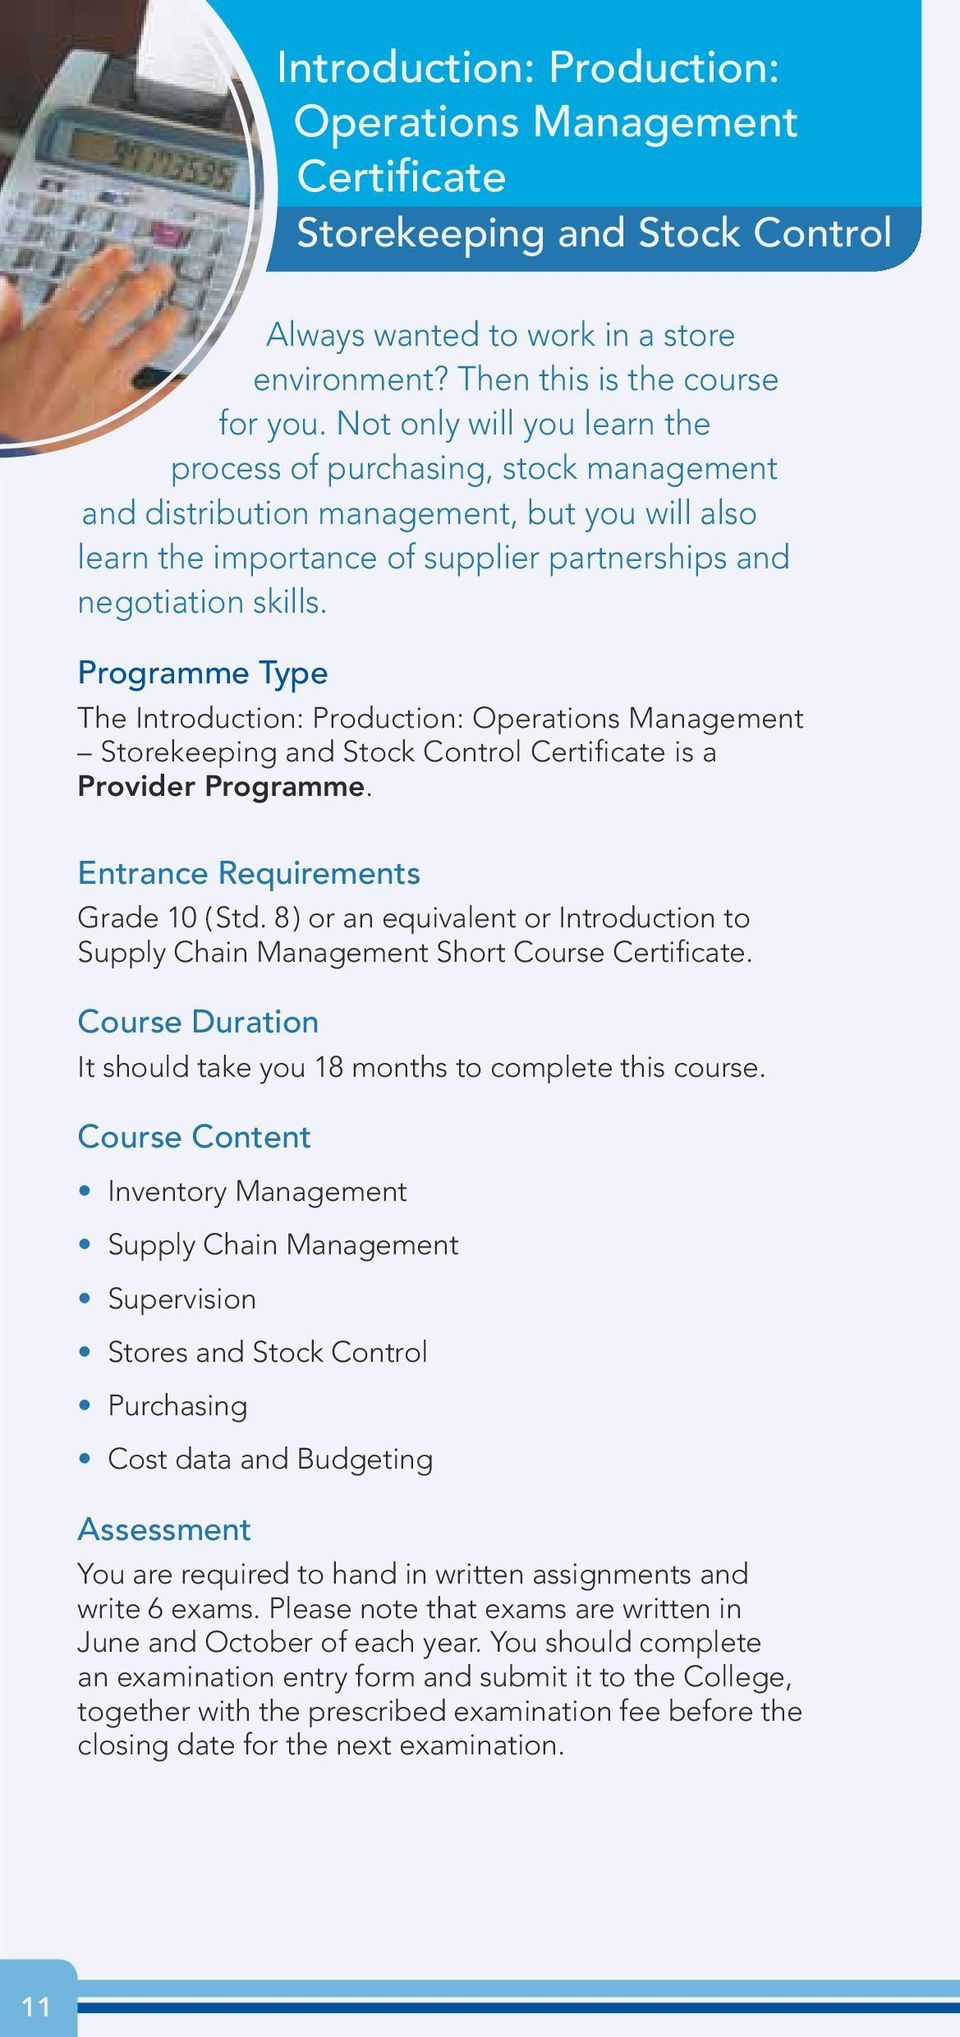 Programme Type The Introduction: Production: Operations Management Storekeeping and Stock Control is a Provider Programme. Entrance Requirements Grade 10 ( Std.